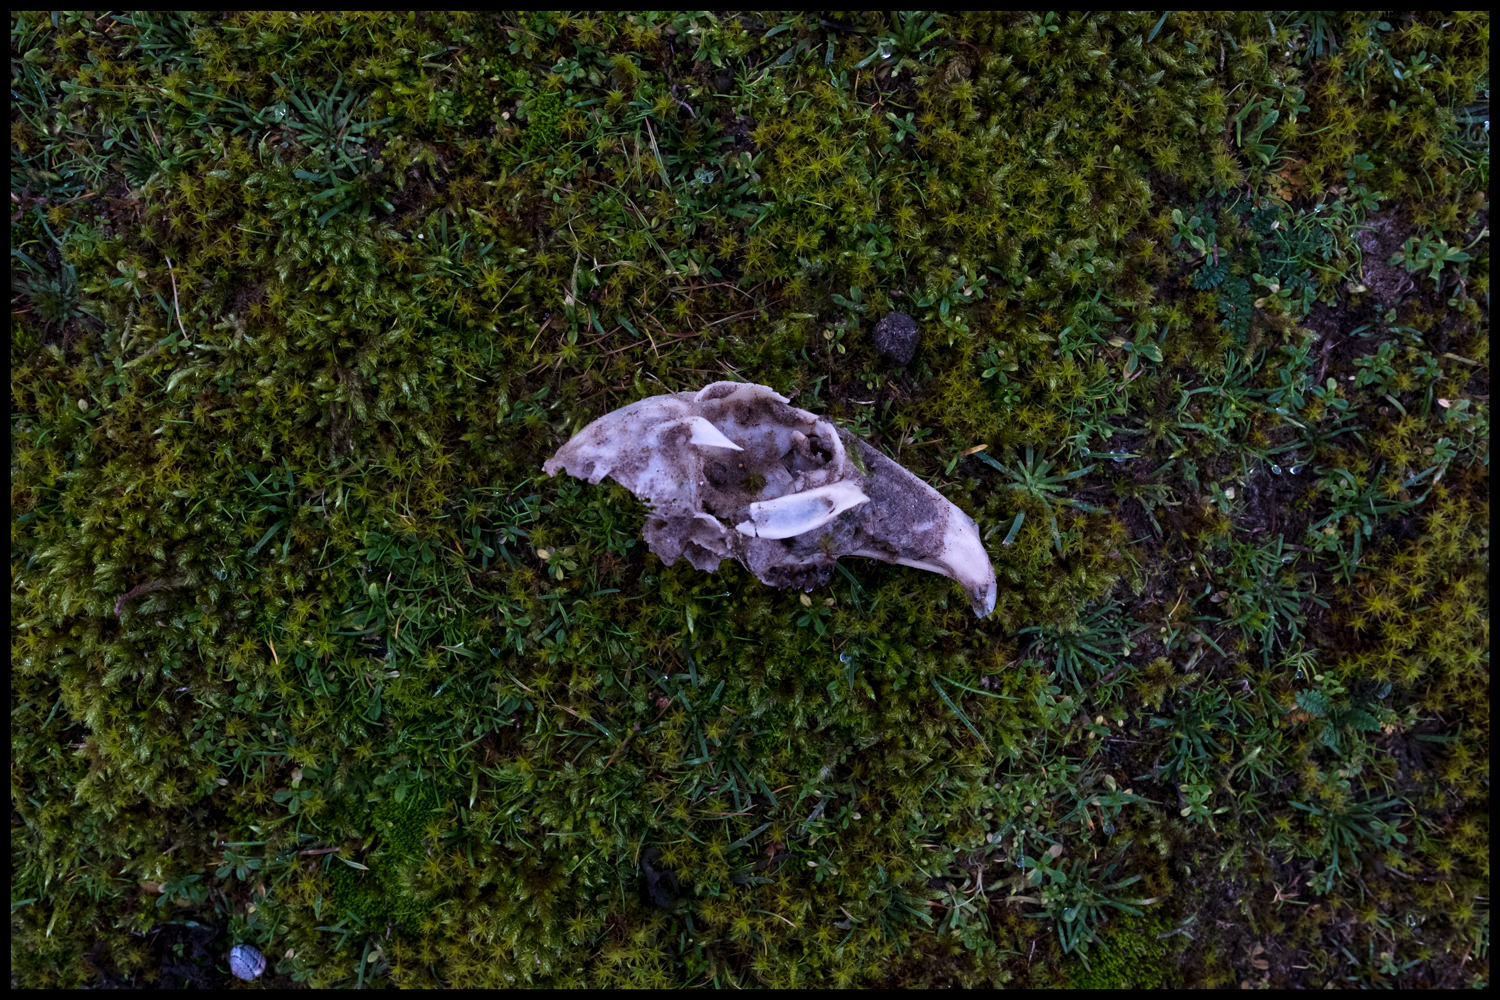 The skull of a bird, possibly a crow, on a bed of moss and grass